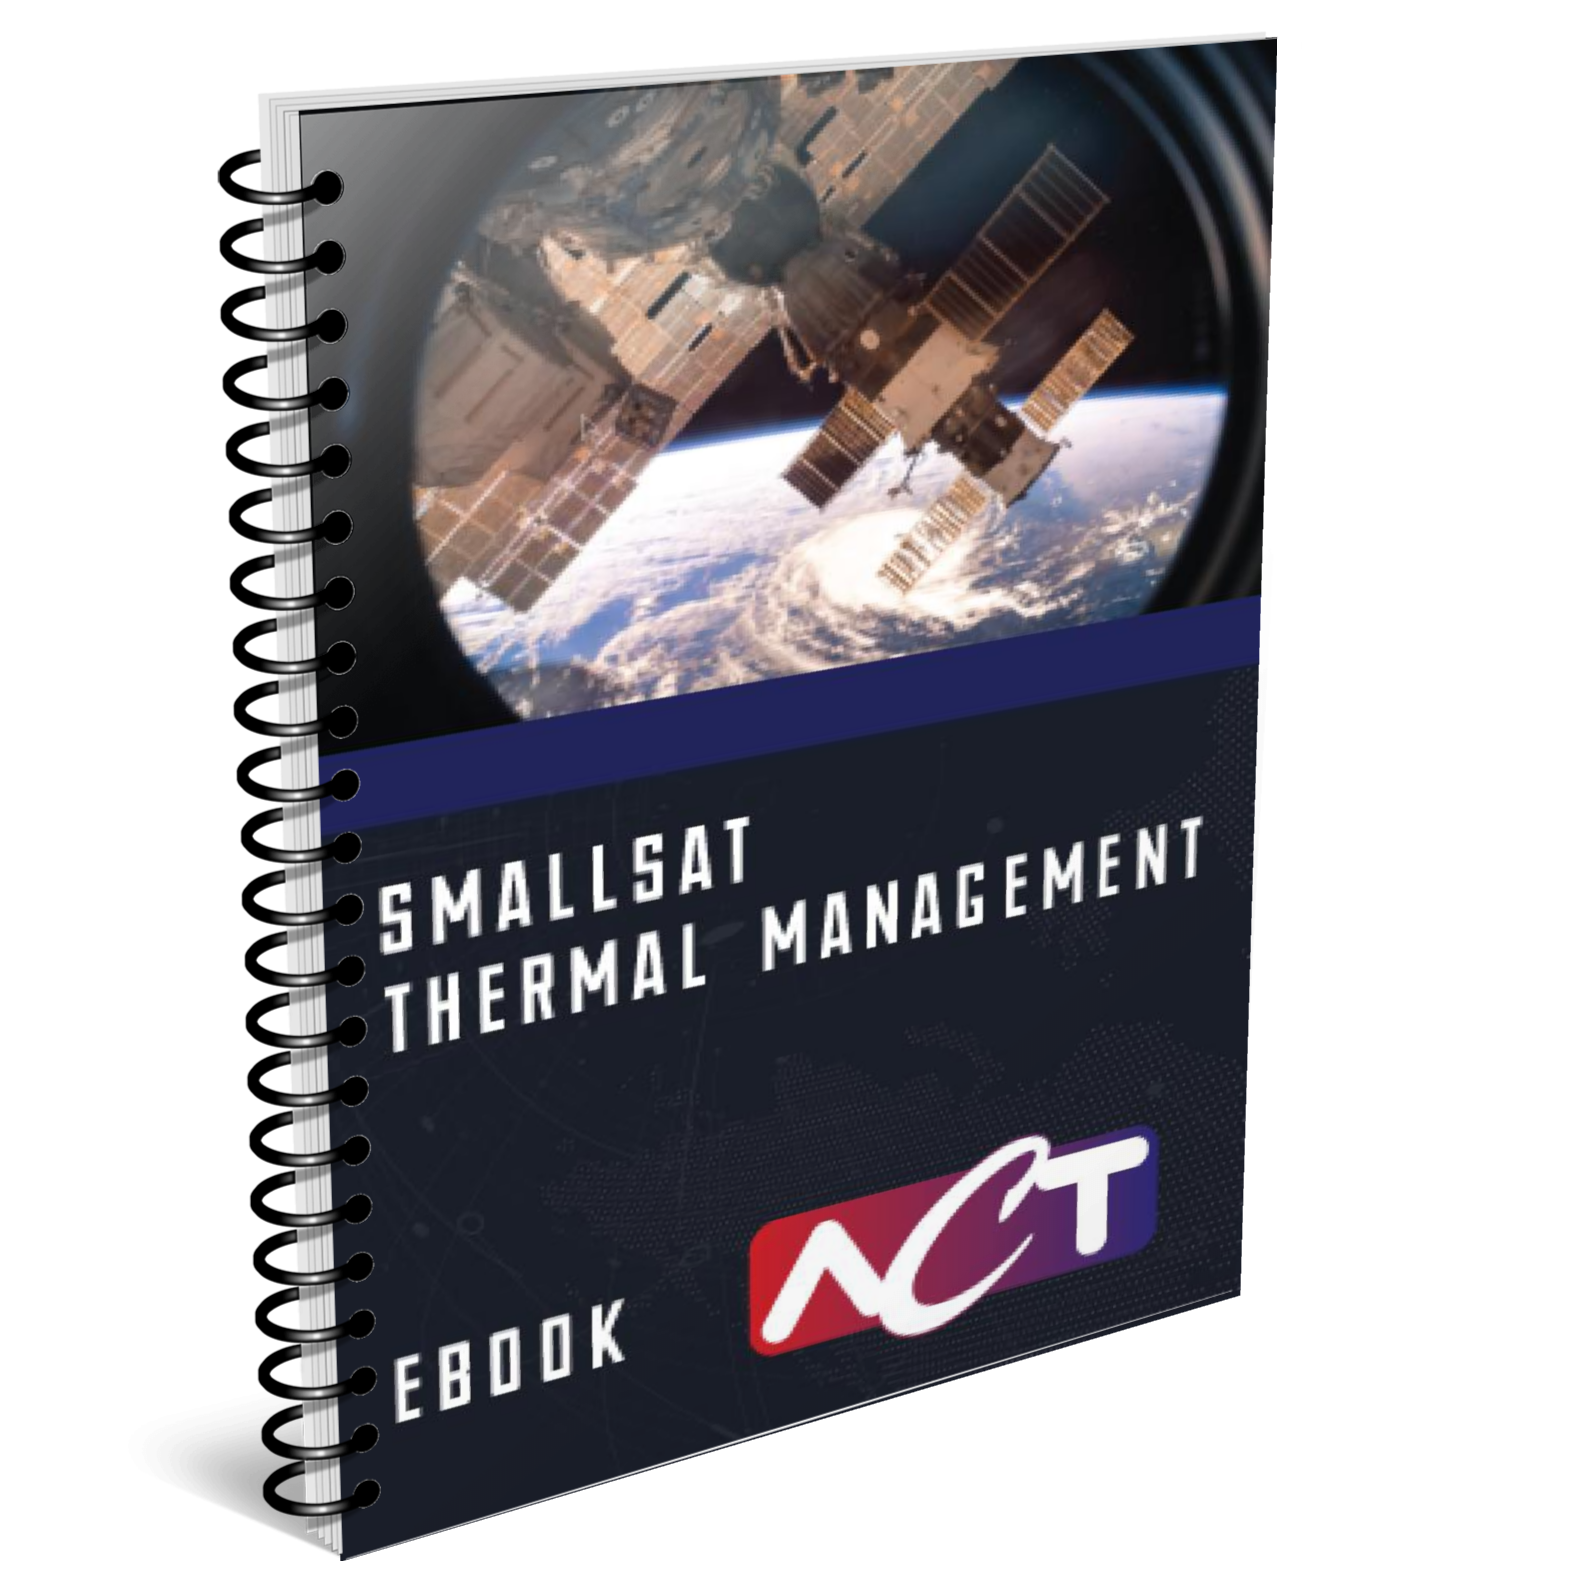 eBook: SmallSat Thermal Management